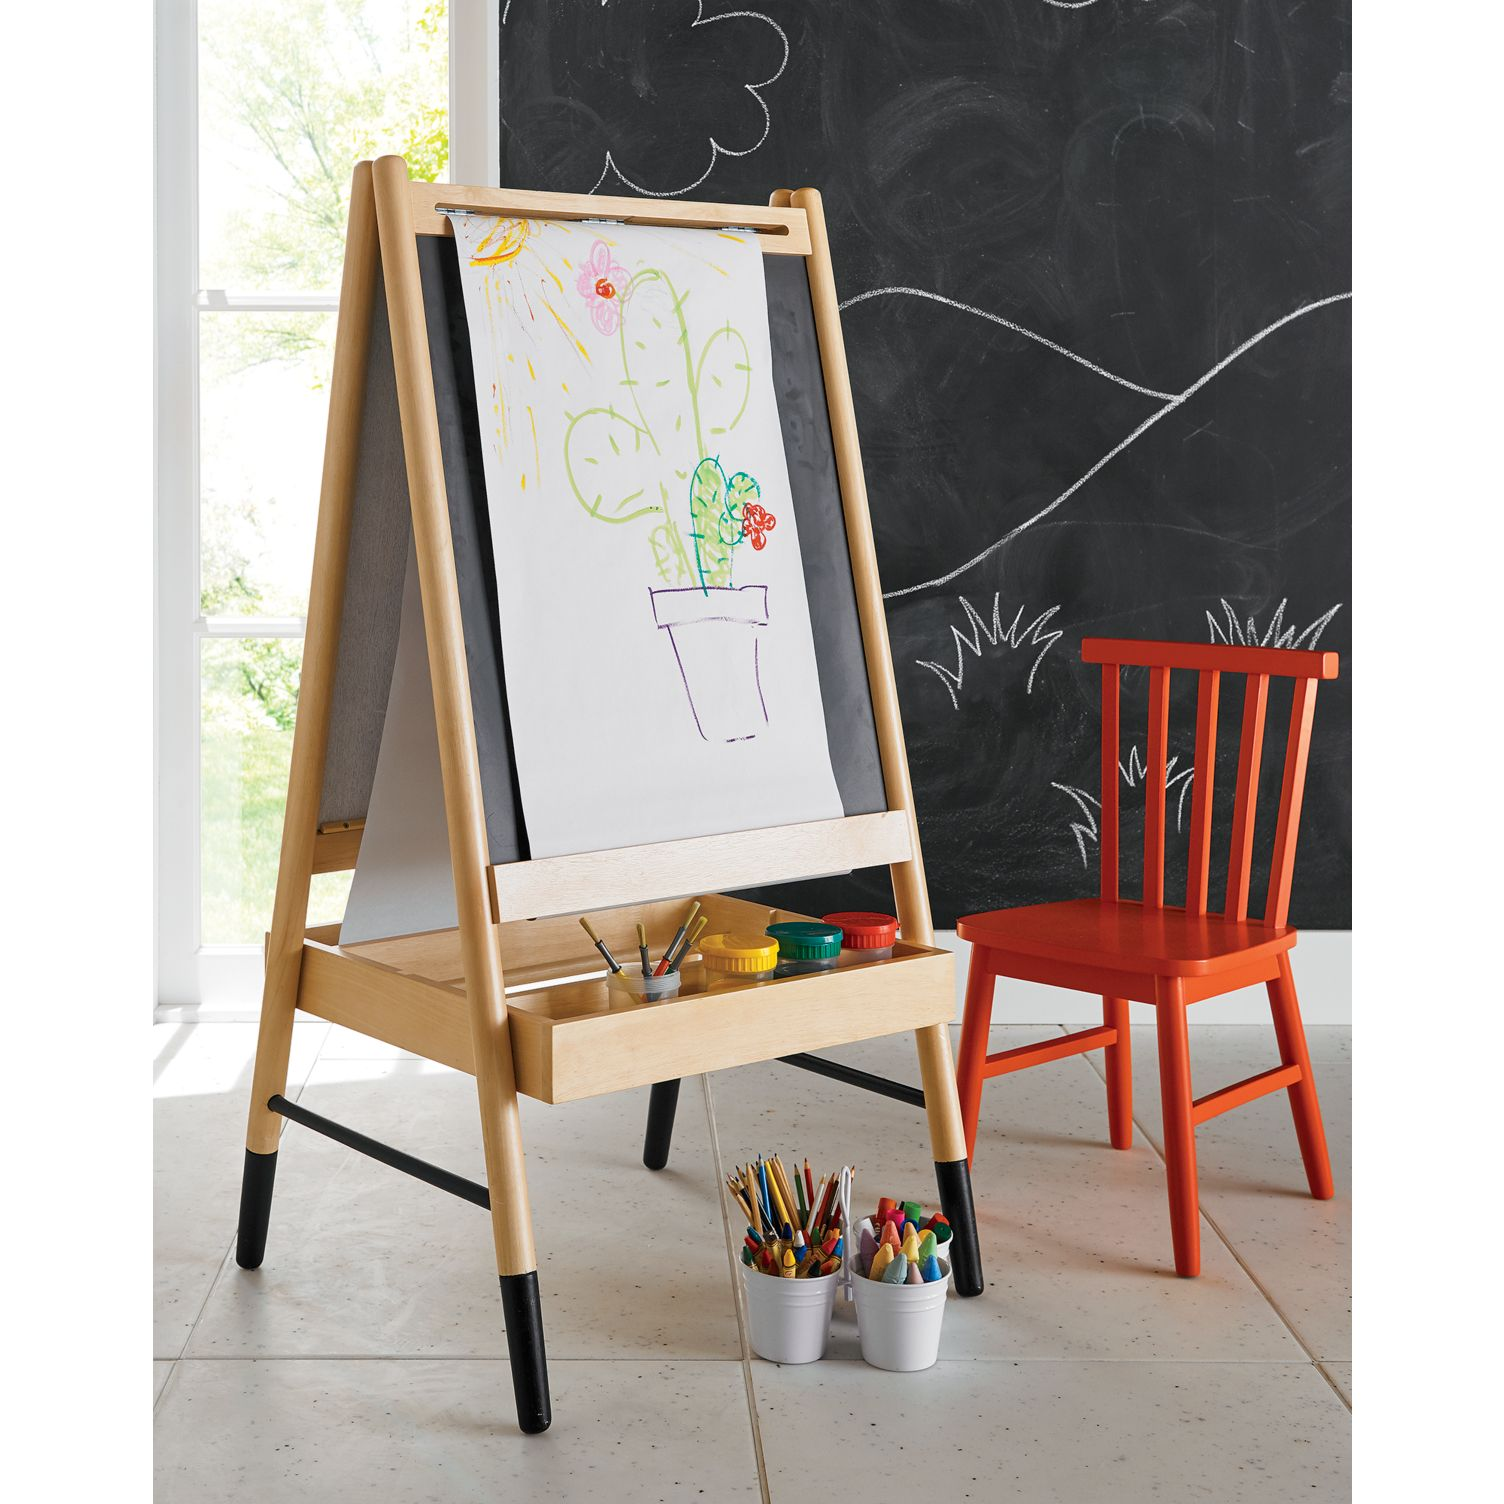 Easel for the playroom